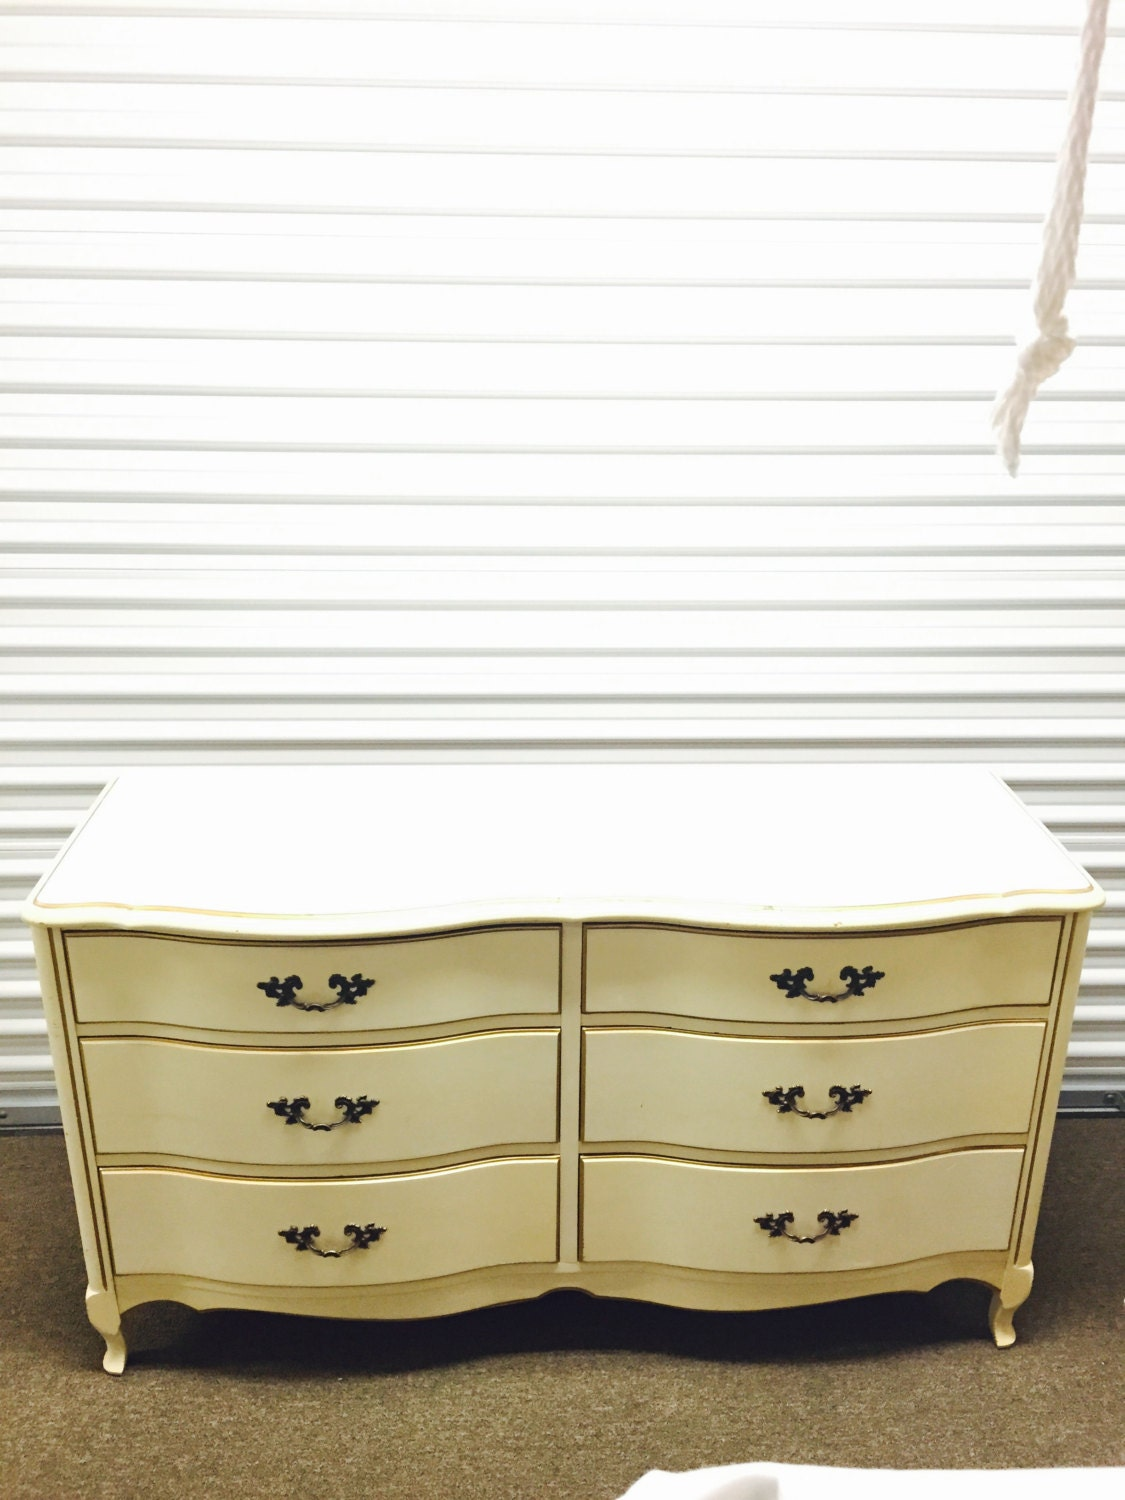 #8C763F Vintage Off White Enamel French Provincial 6 Drawer Long Dresser  with 1125x1500 px of Most Effective Off White Dressers 15001125 wallpaper @ avoidforclosure.info